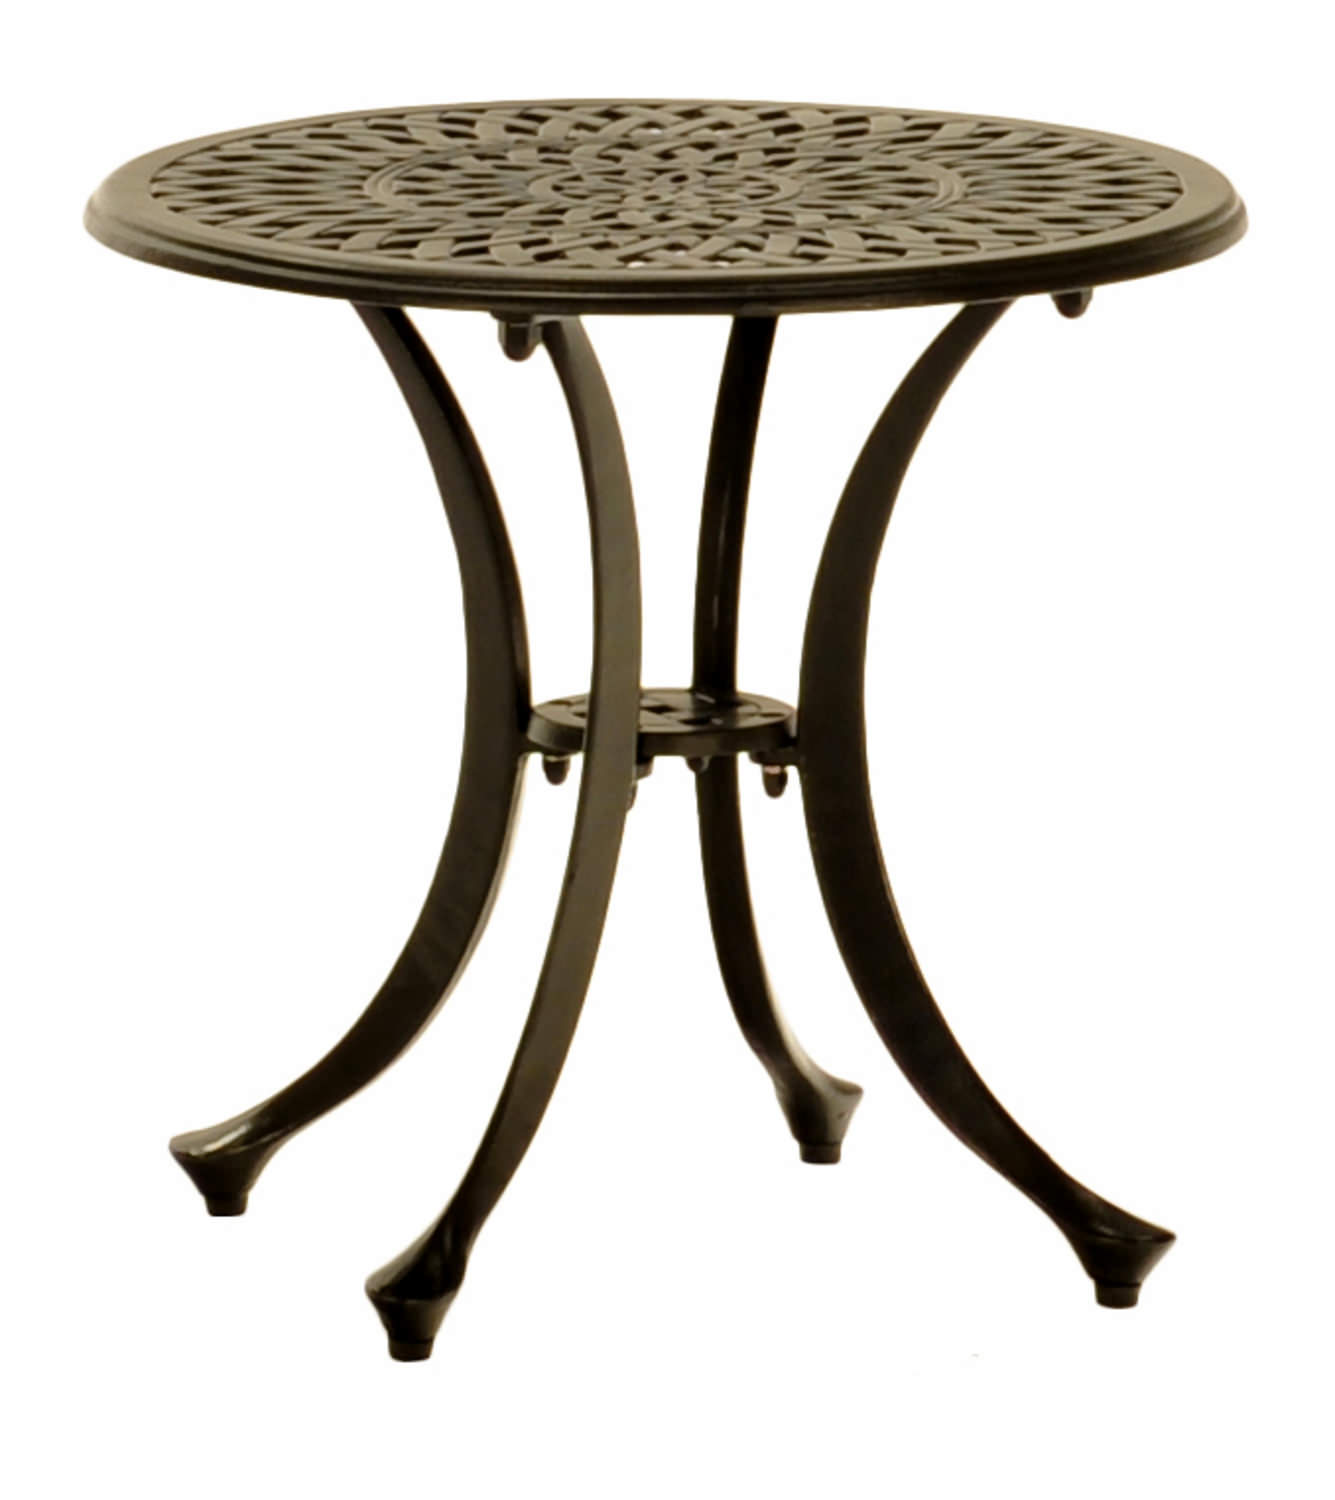 20u2033 Round Cast Aluminum Side Table : HOM Furniture : Furniture Stores in Minneapolis Minnesota ...